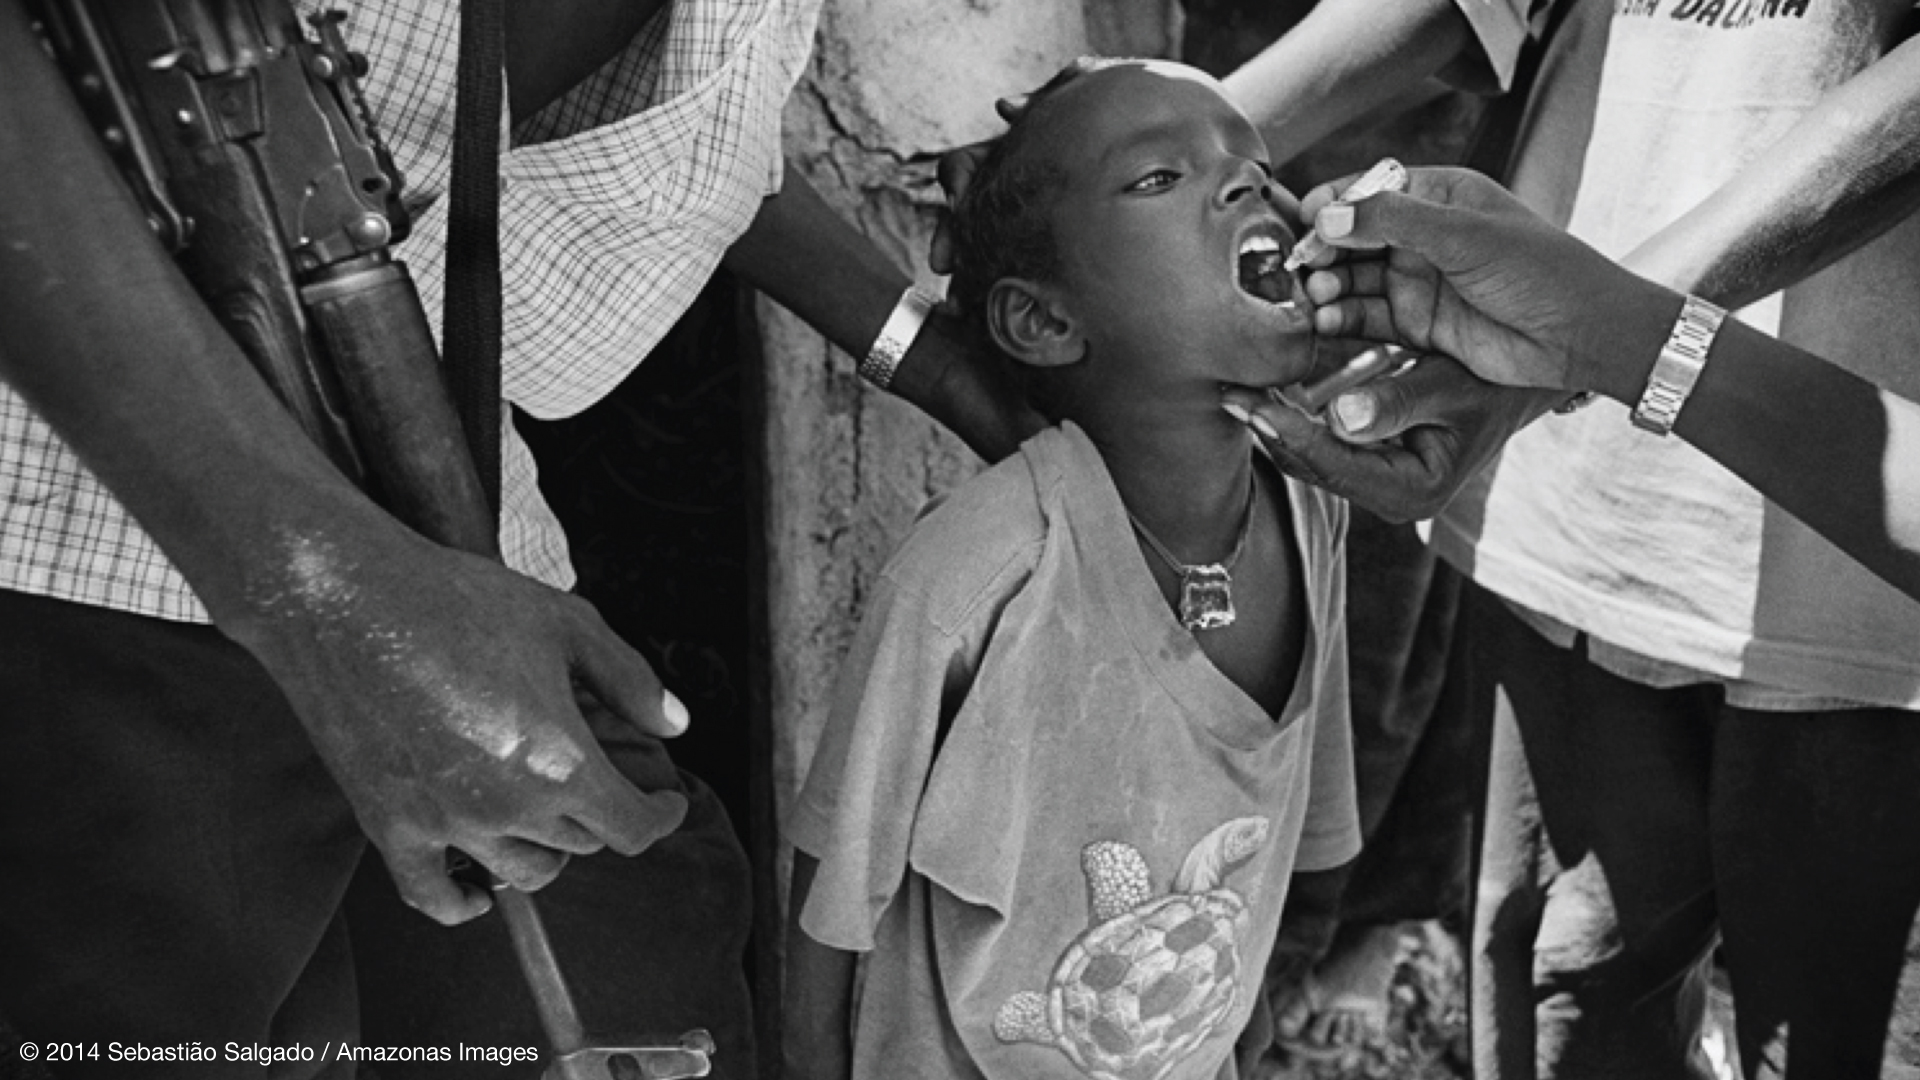 Scenes From the Polio Fight